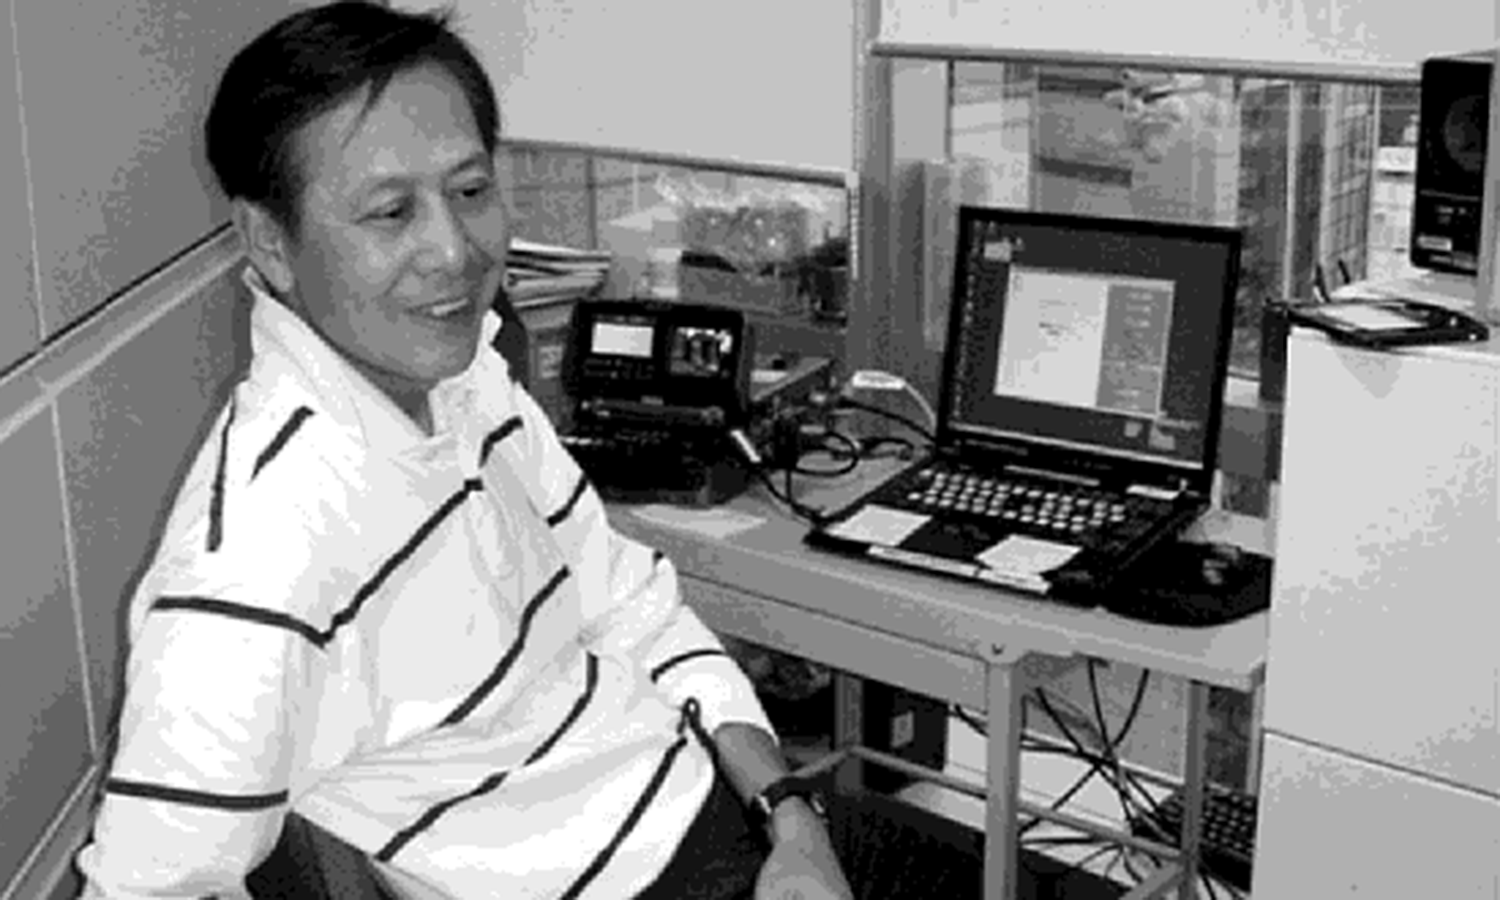 AC - EDDY LI WITH EDITING EQUIPMENT 2013-05-12 at 11.49.03 PM